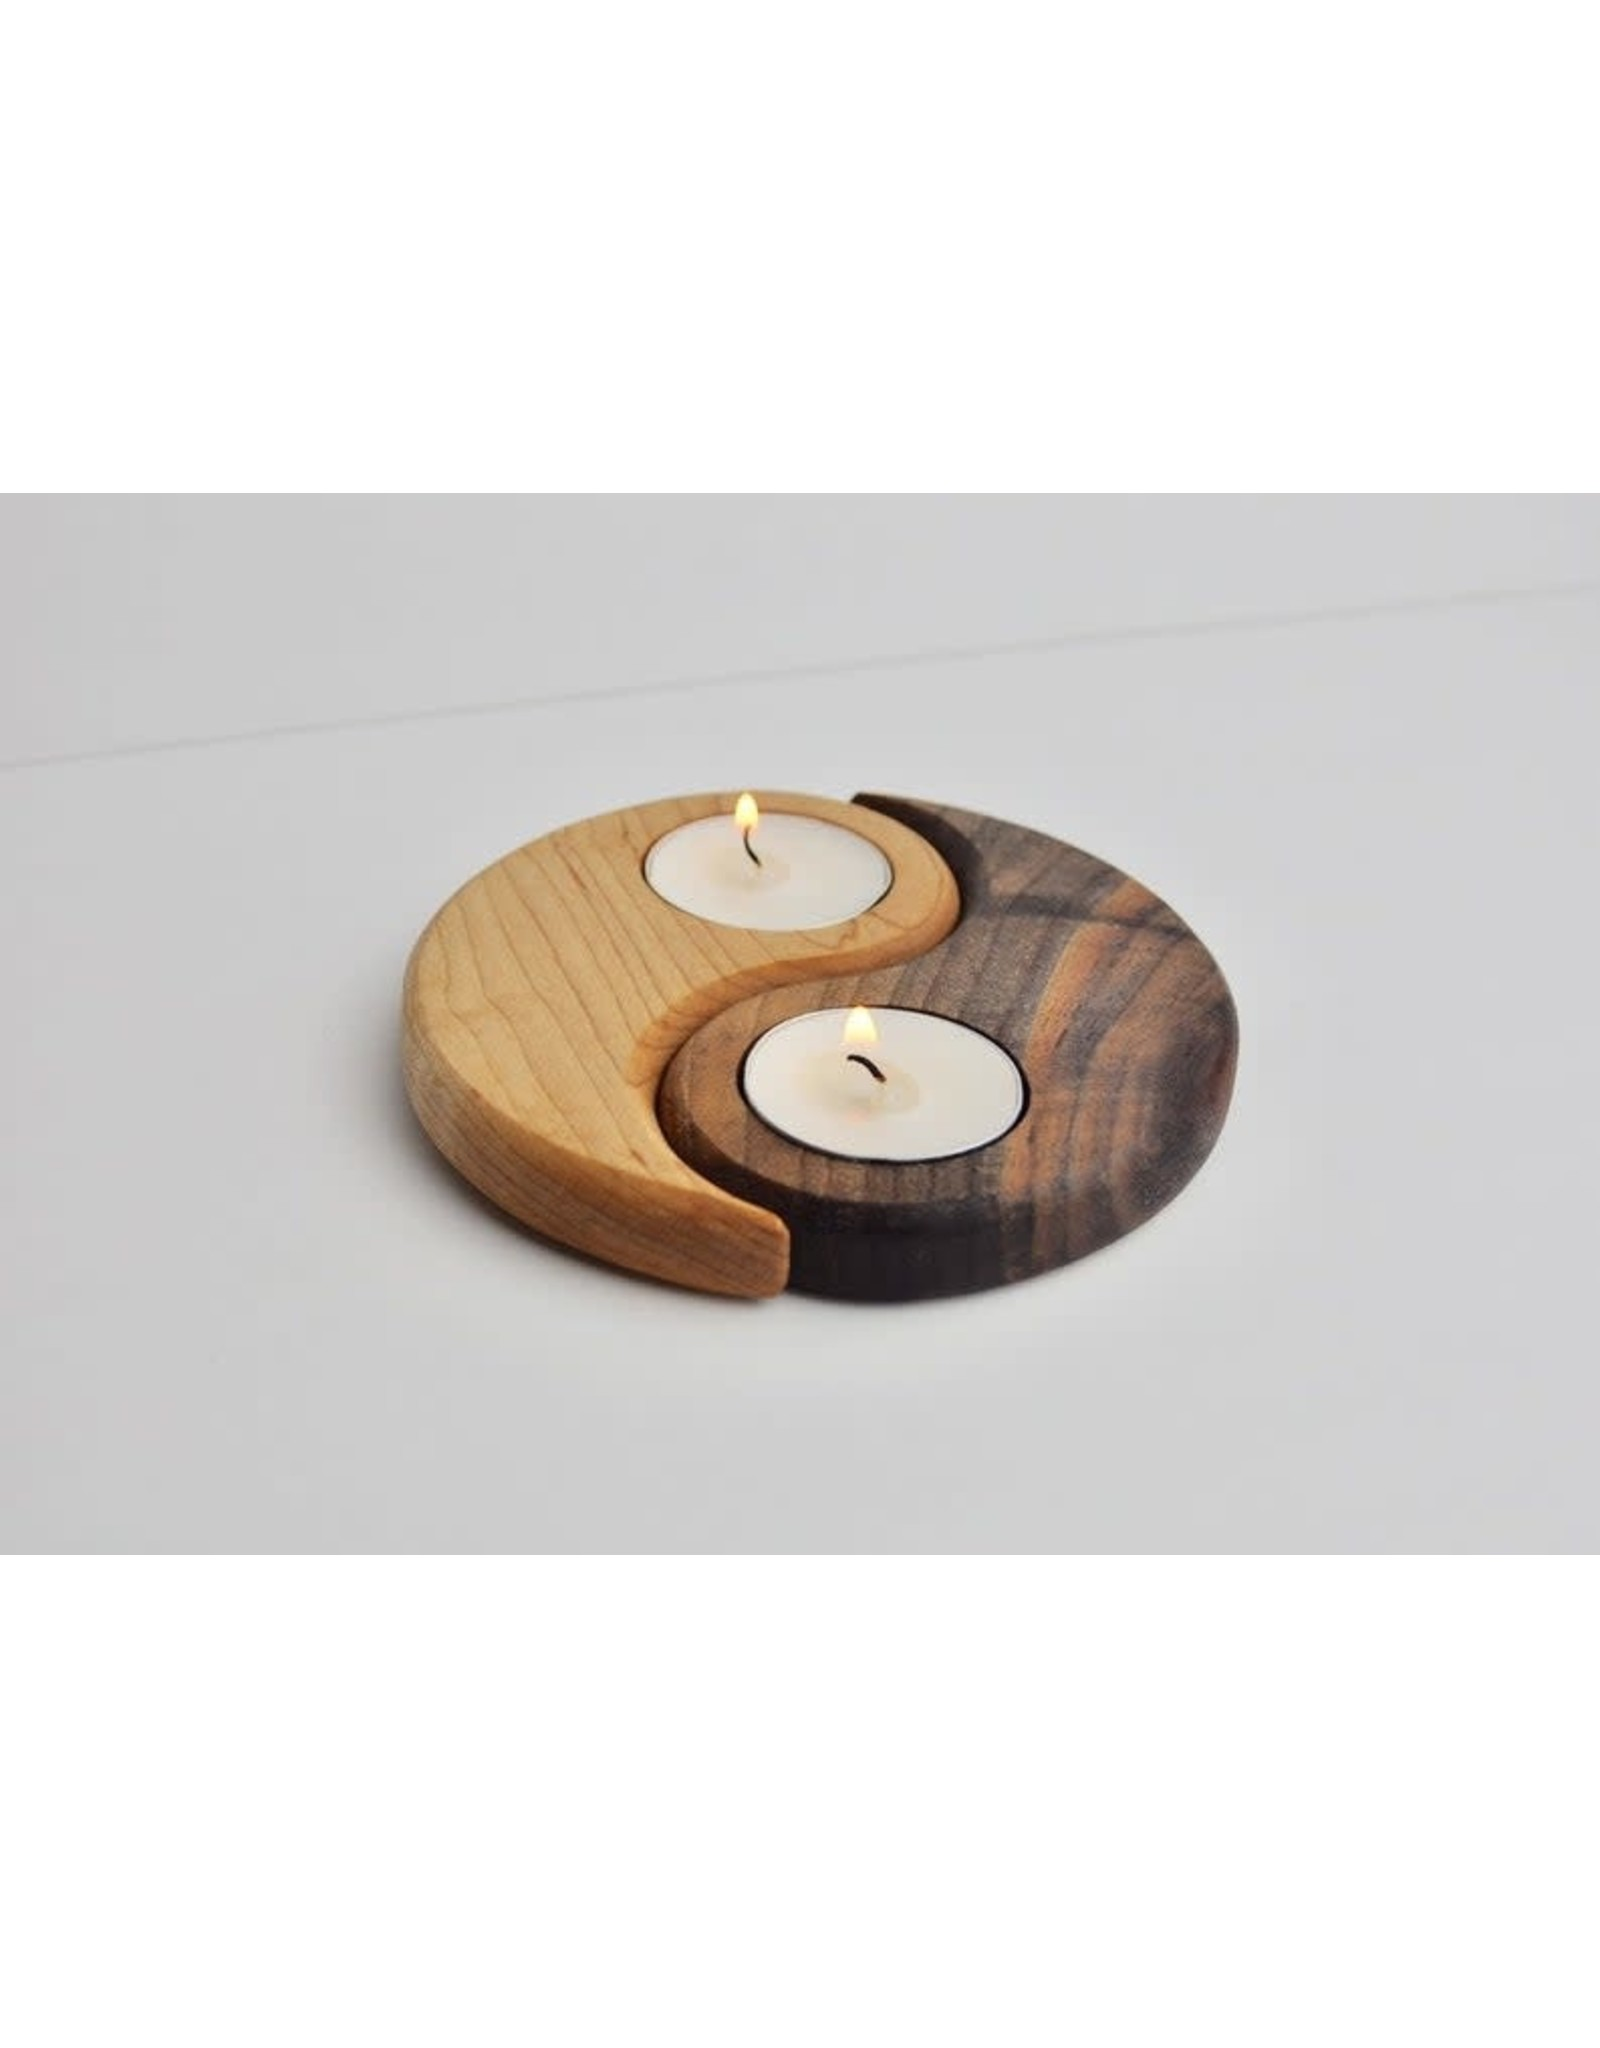 Olive Wood Yin Yang Tea Light Candle Holder